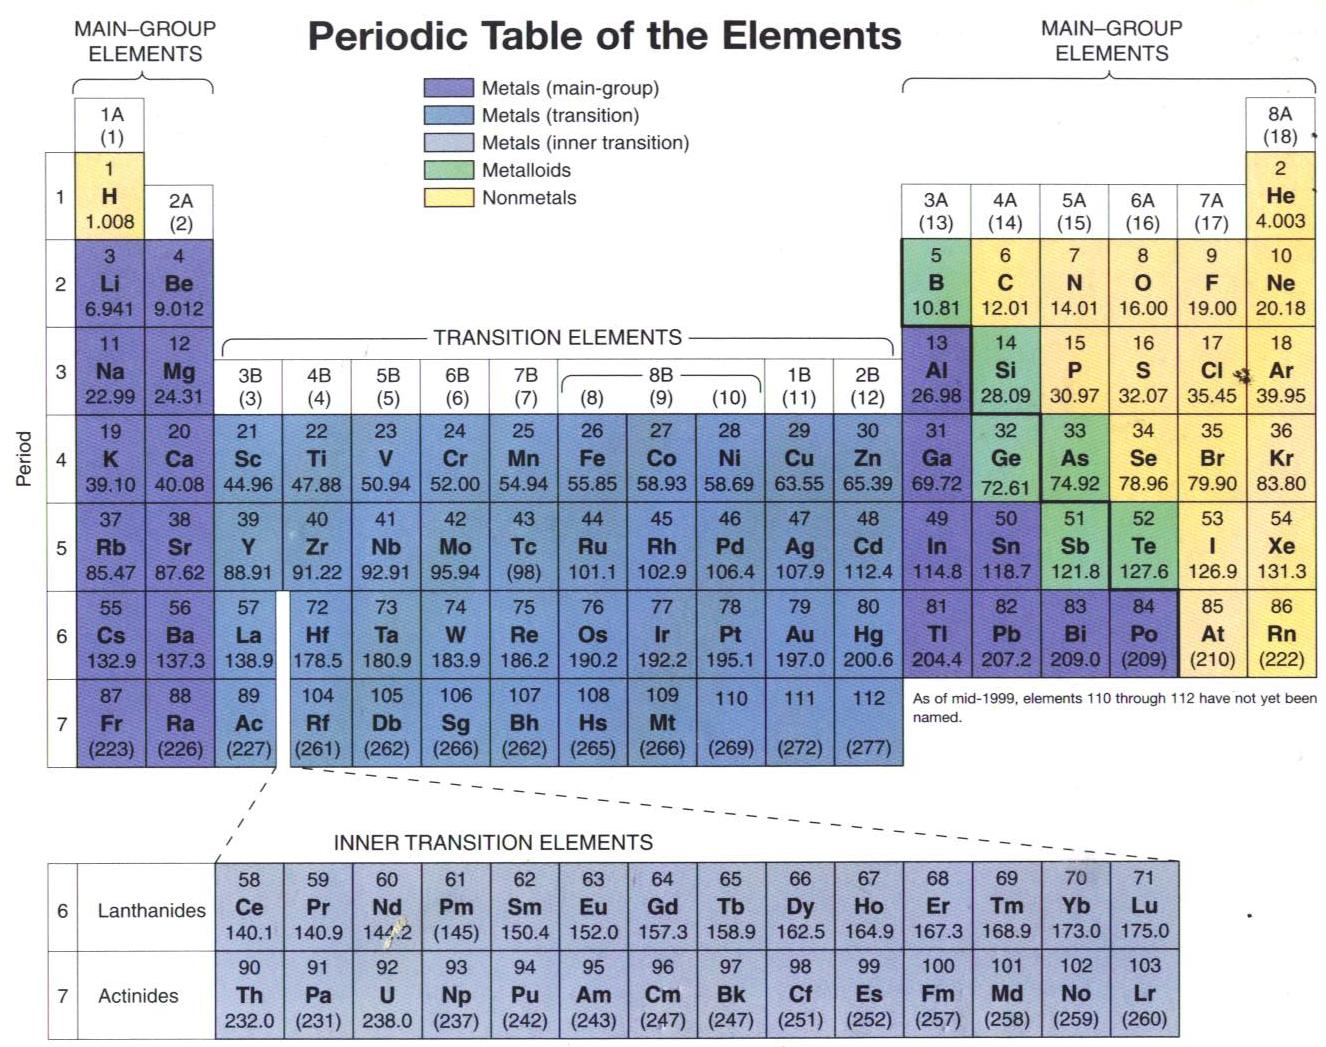 Al-Chemist Ungu: Periodic Table of the Elements